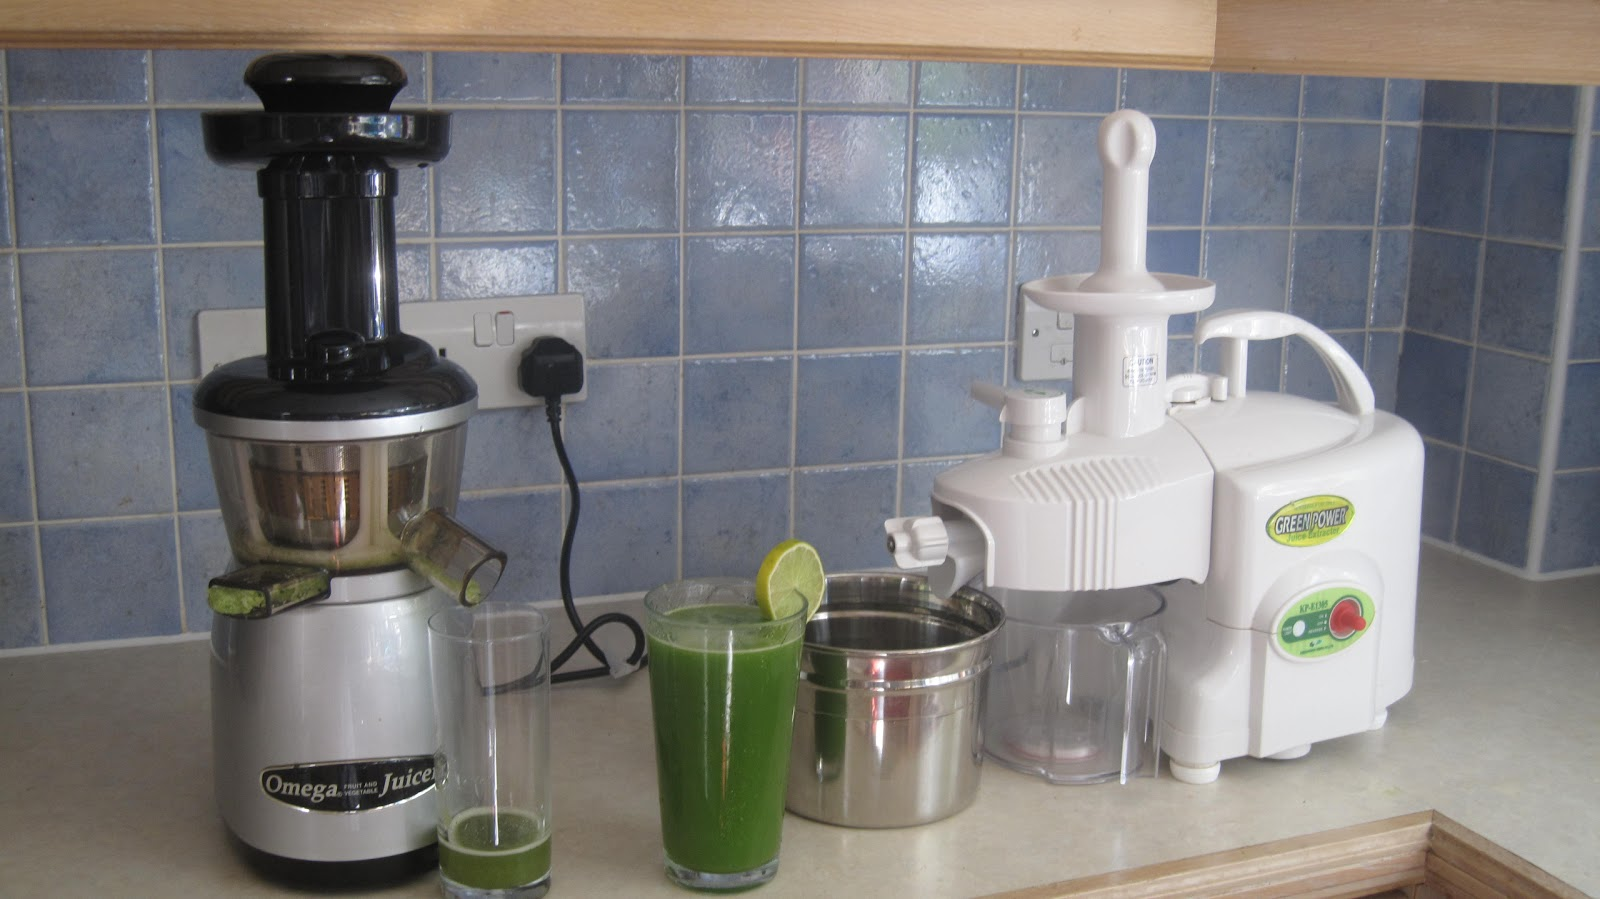 Matstone Masticating Juicer Reviews : Auger valve Image: Double Auger Juicer